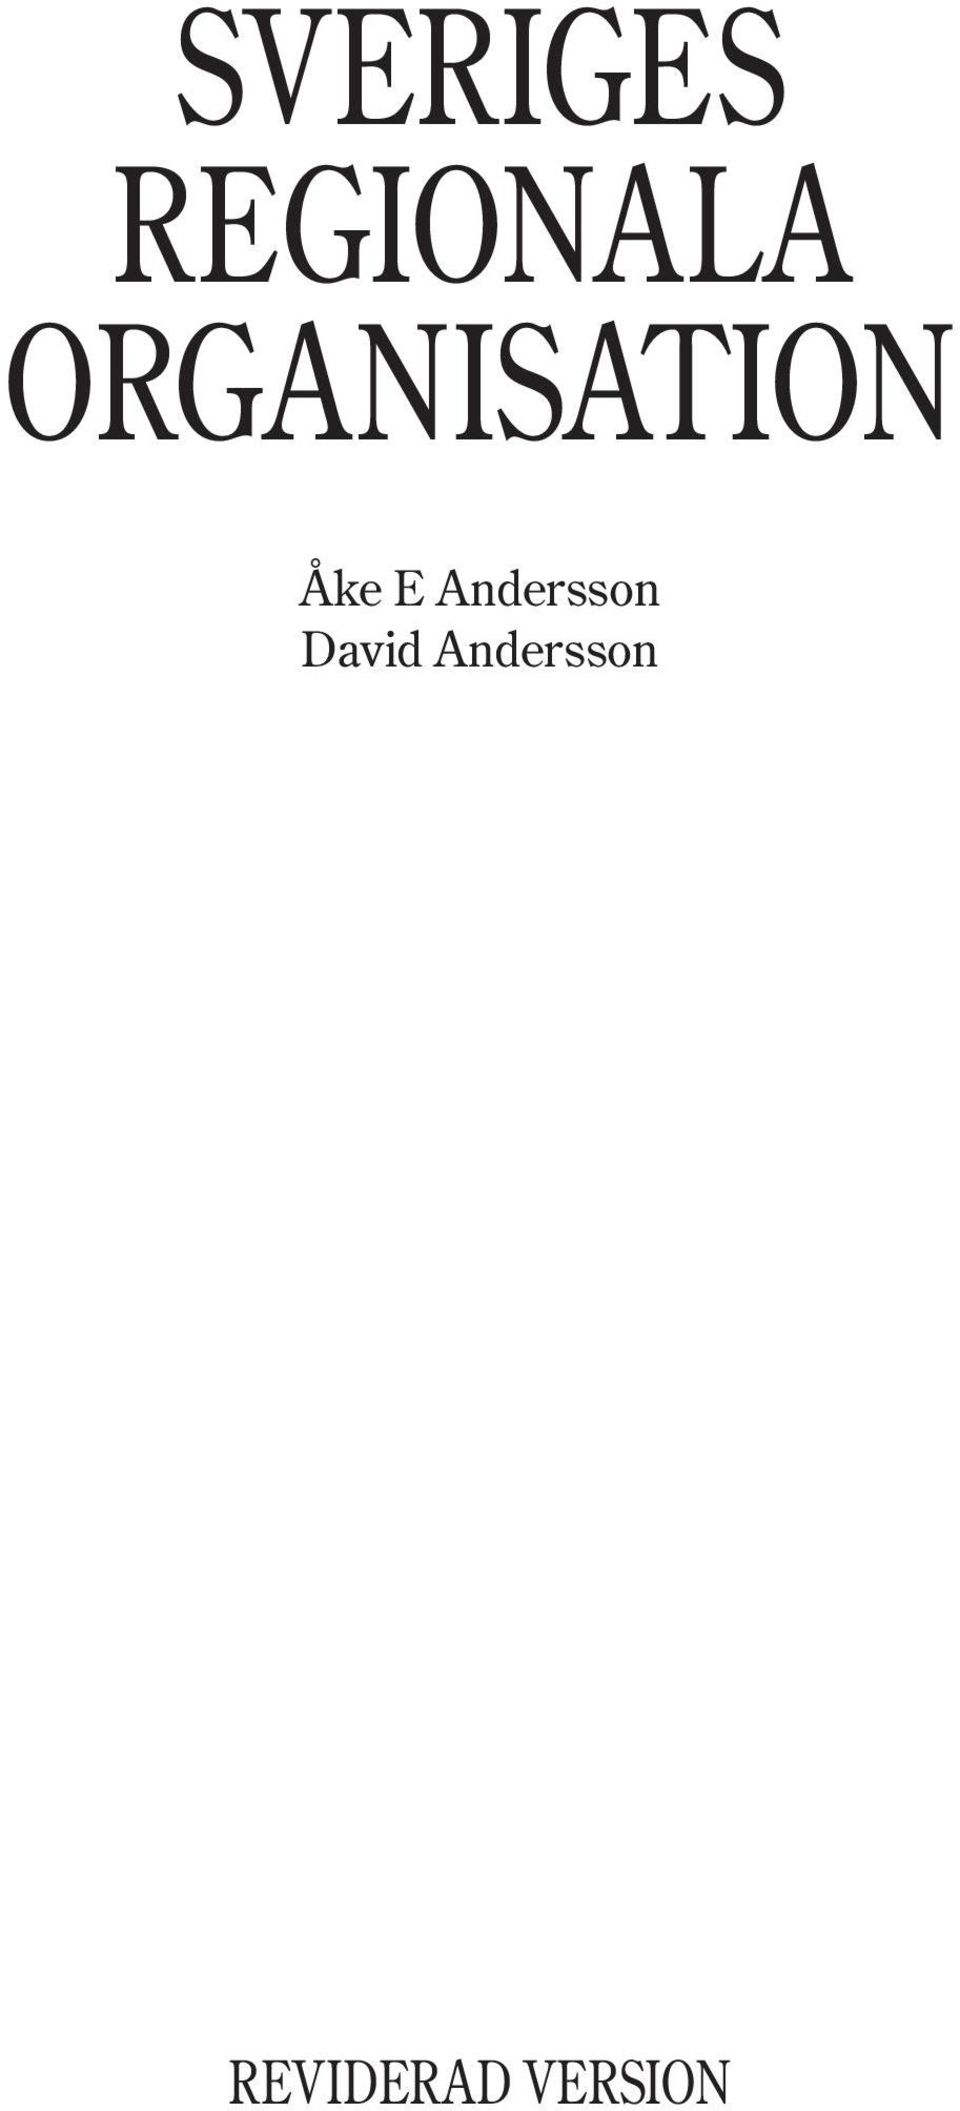 Andersson David